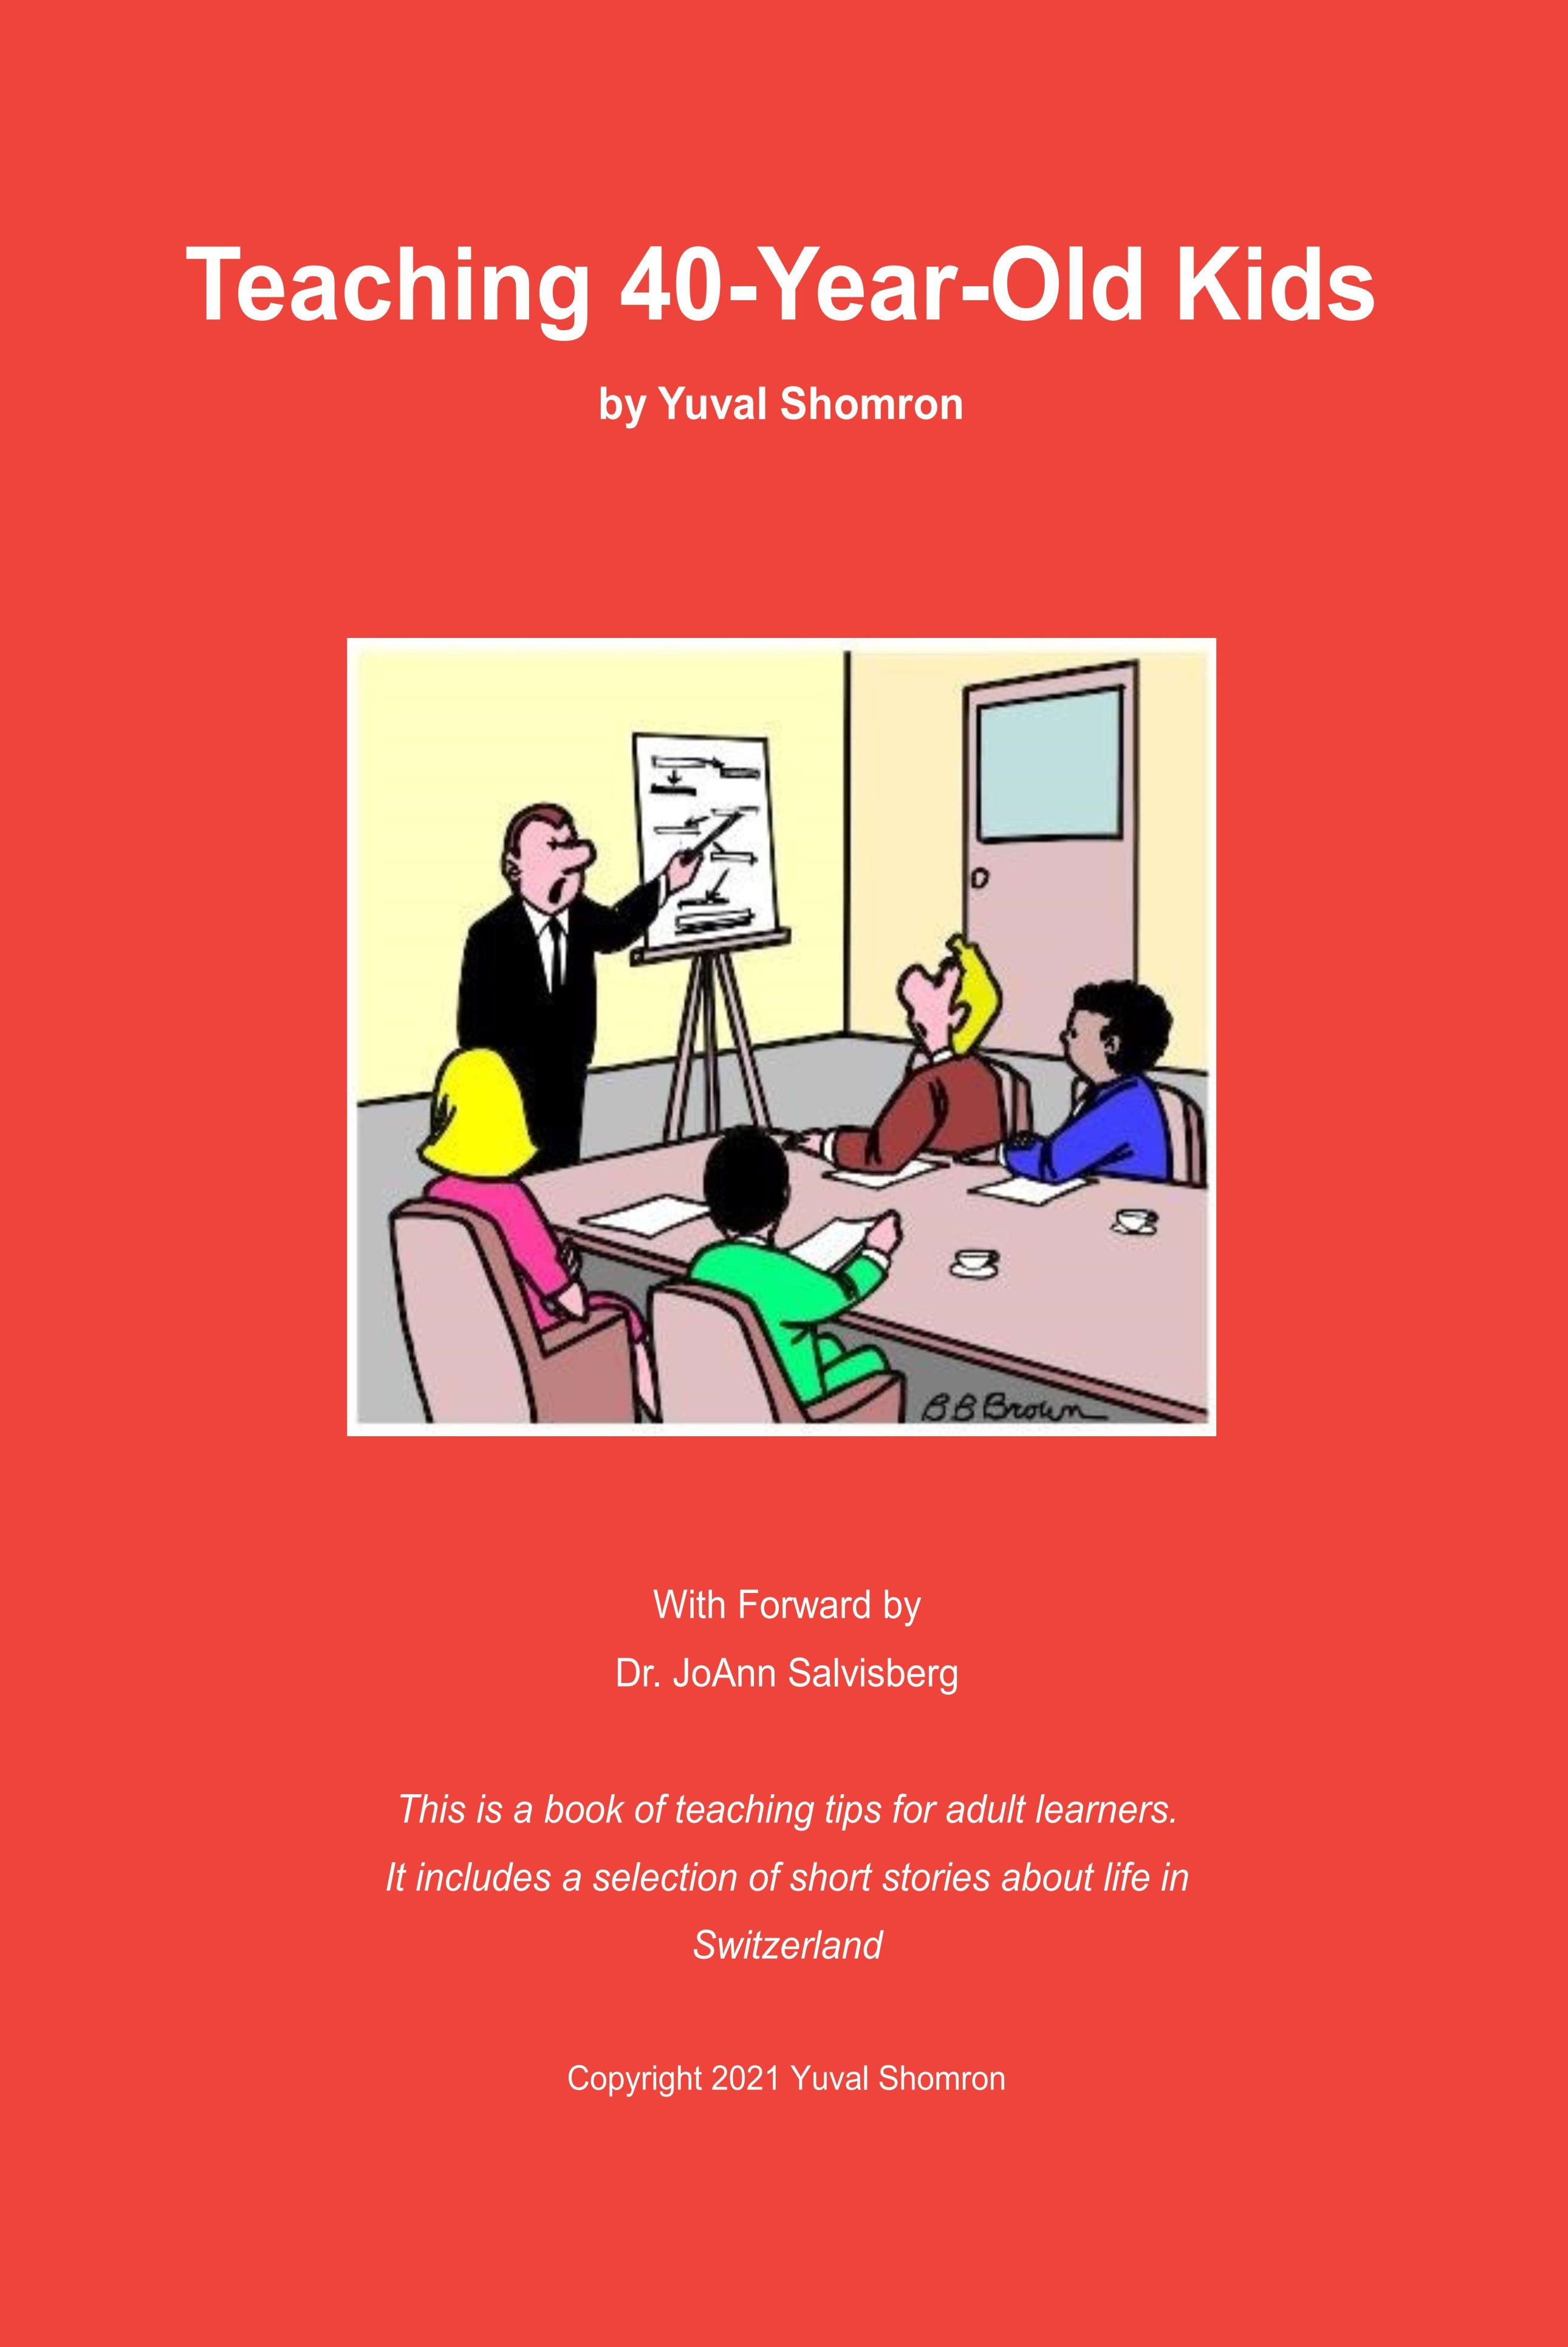 Teaching 40-Year-Old Kids - Stimulating book of teaching tips for adult learners